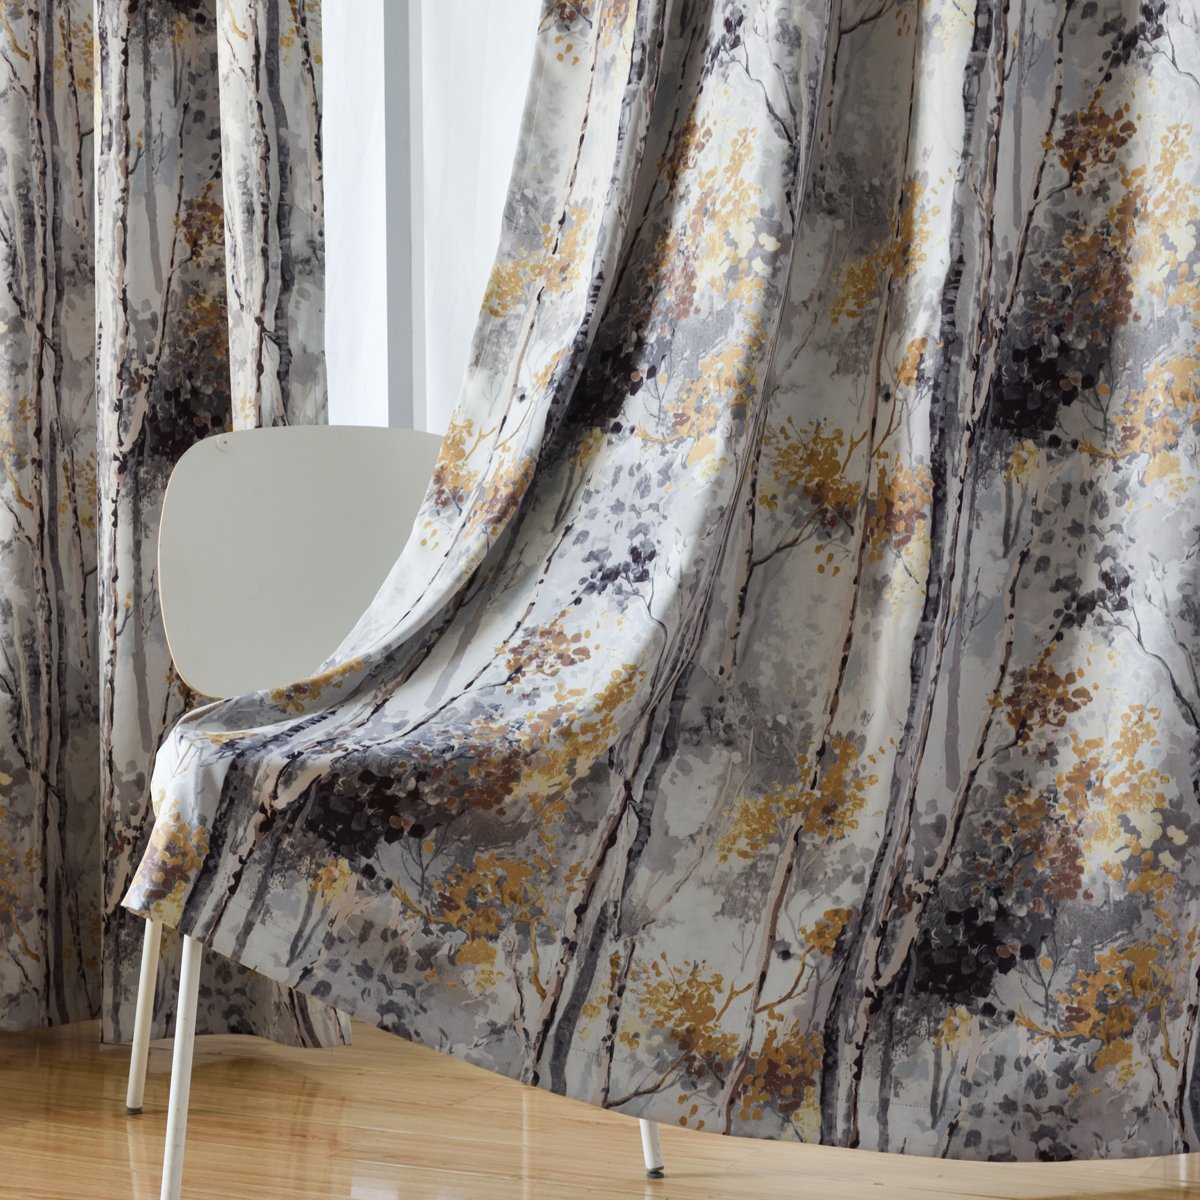 2 Panels 63 Inch Length Grommet Digital Printing Soft Room Darkening Blackout Curtains for Baby Room Green Kotile Floral Design Print Short Window Drapes with Colorful Tree Curtain for Kids Room